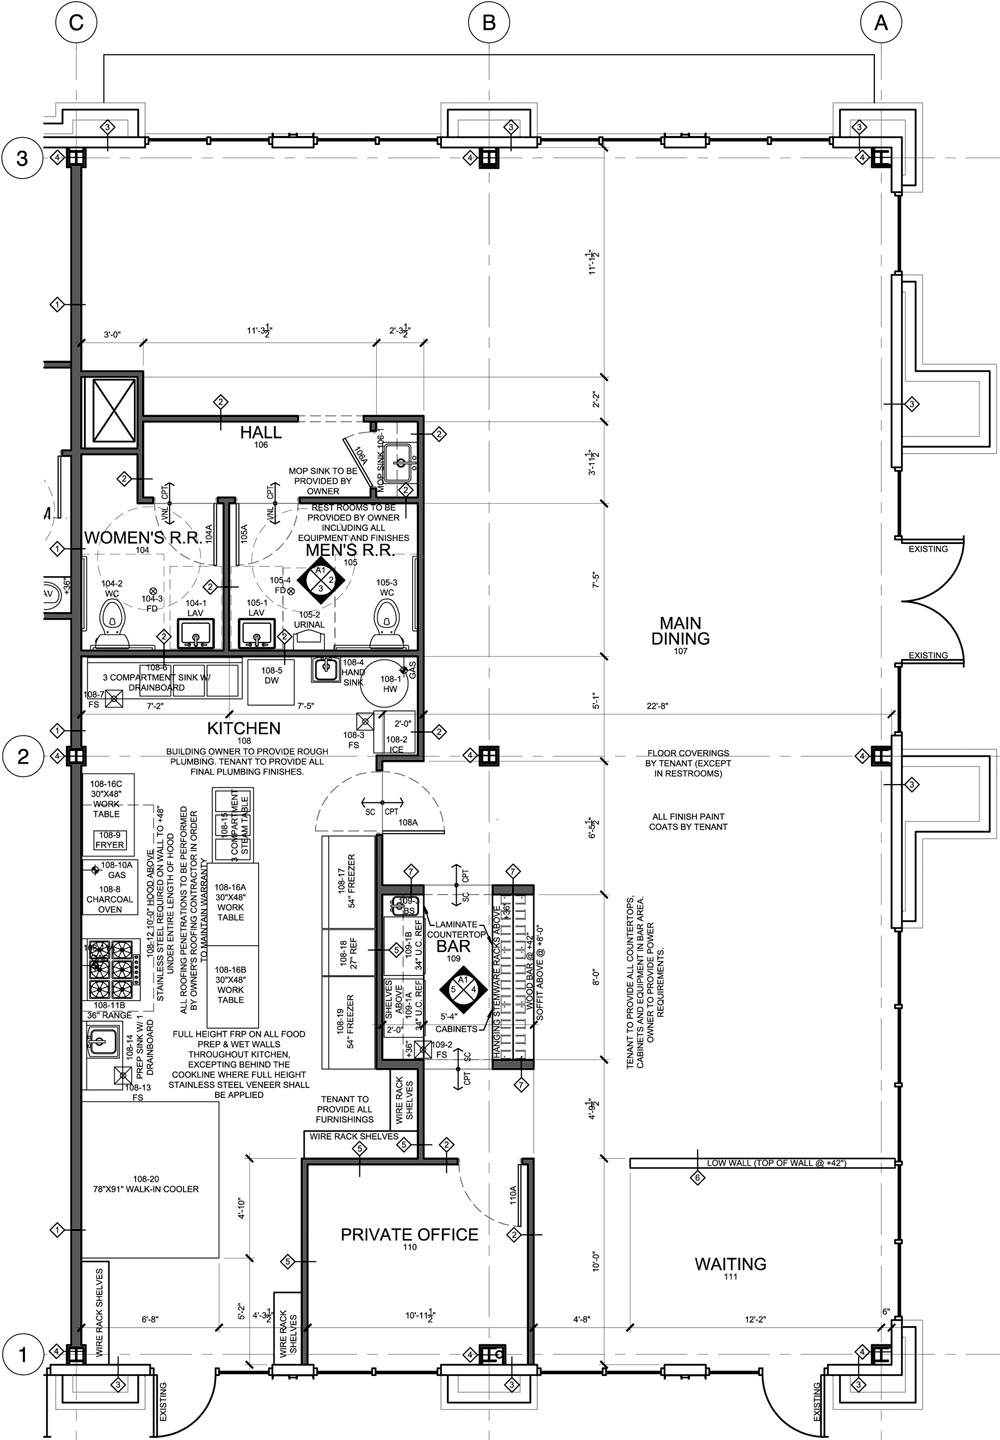 restaurant floor plan for tenant improvement taste of himalaya nepalese restaurant evstudio. Black Bedroom Furniture Sets. Home Design Ideas